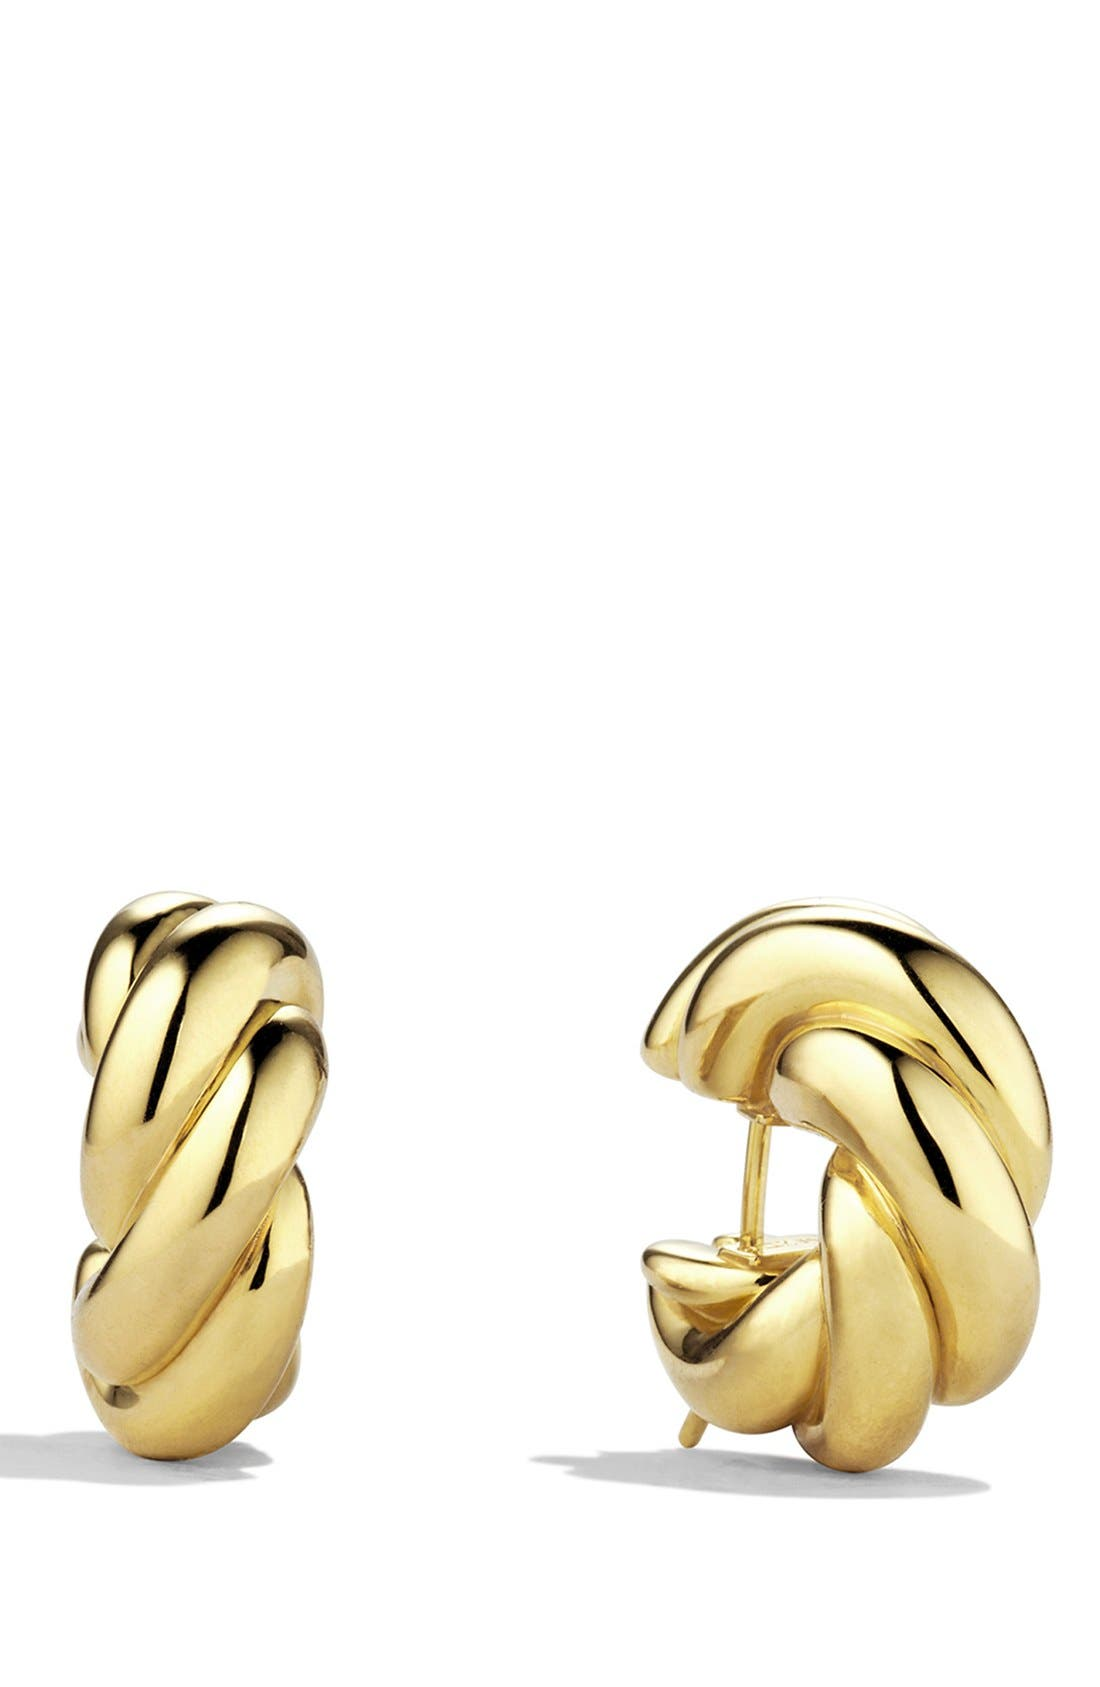 Alternate Image 1 Selected - David Yurman 'Sculpted Cable' Small Earrings in Gold